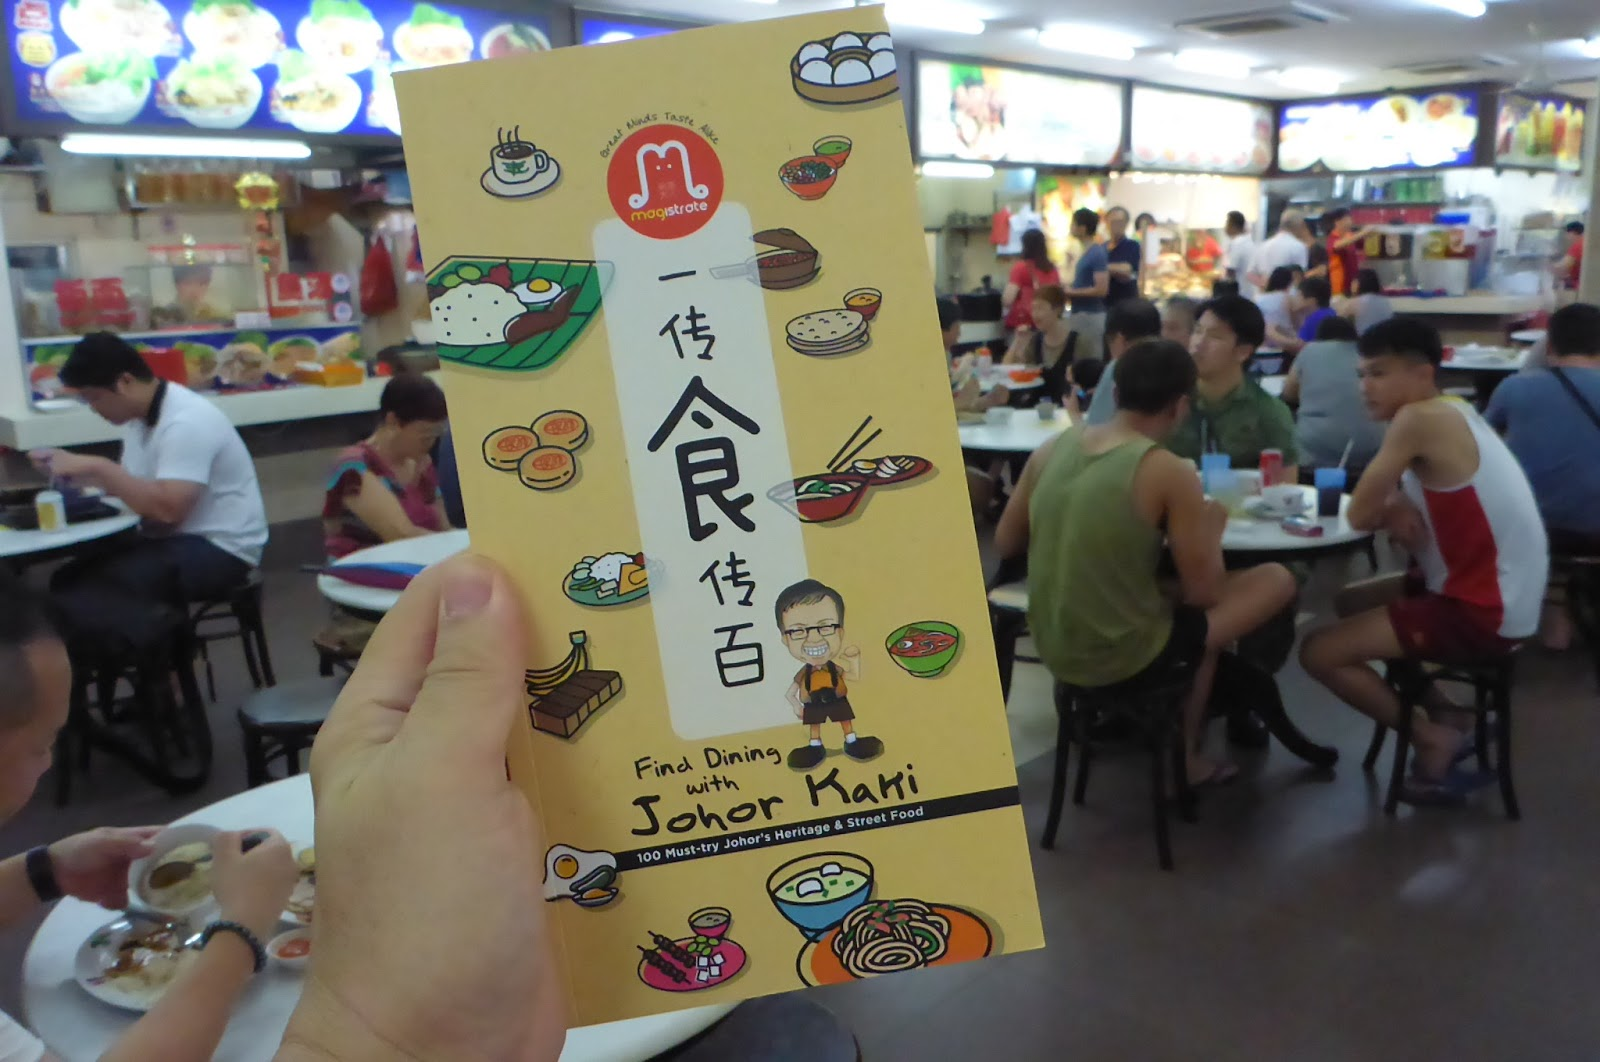 johor kaki book on jb street food magistrate interview johor kaki book jb street food